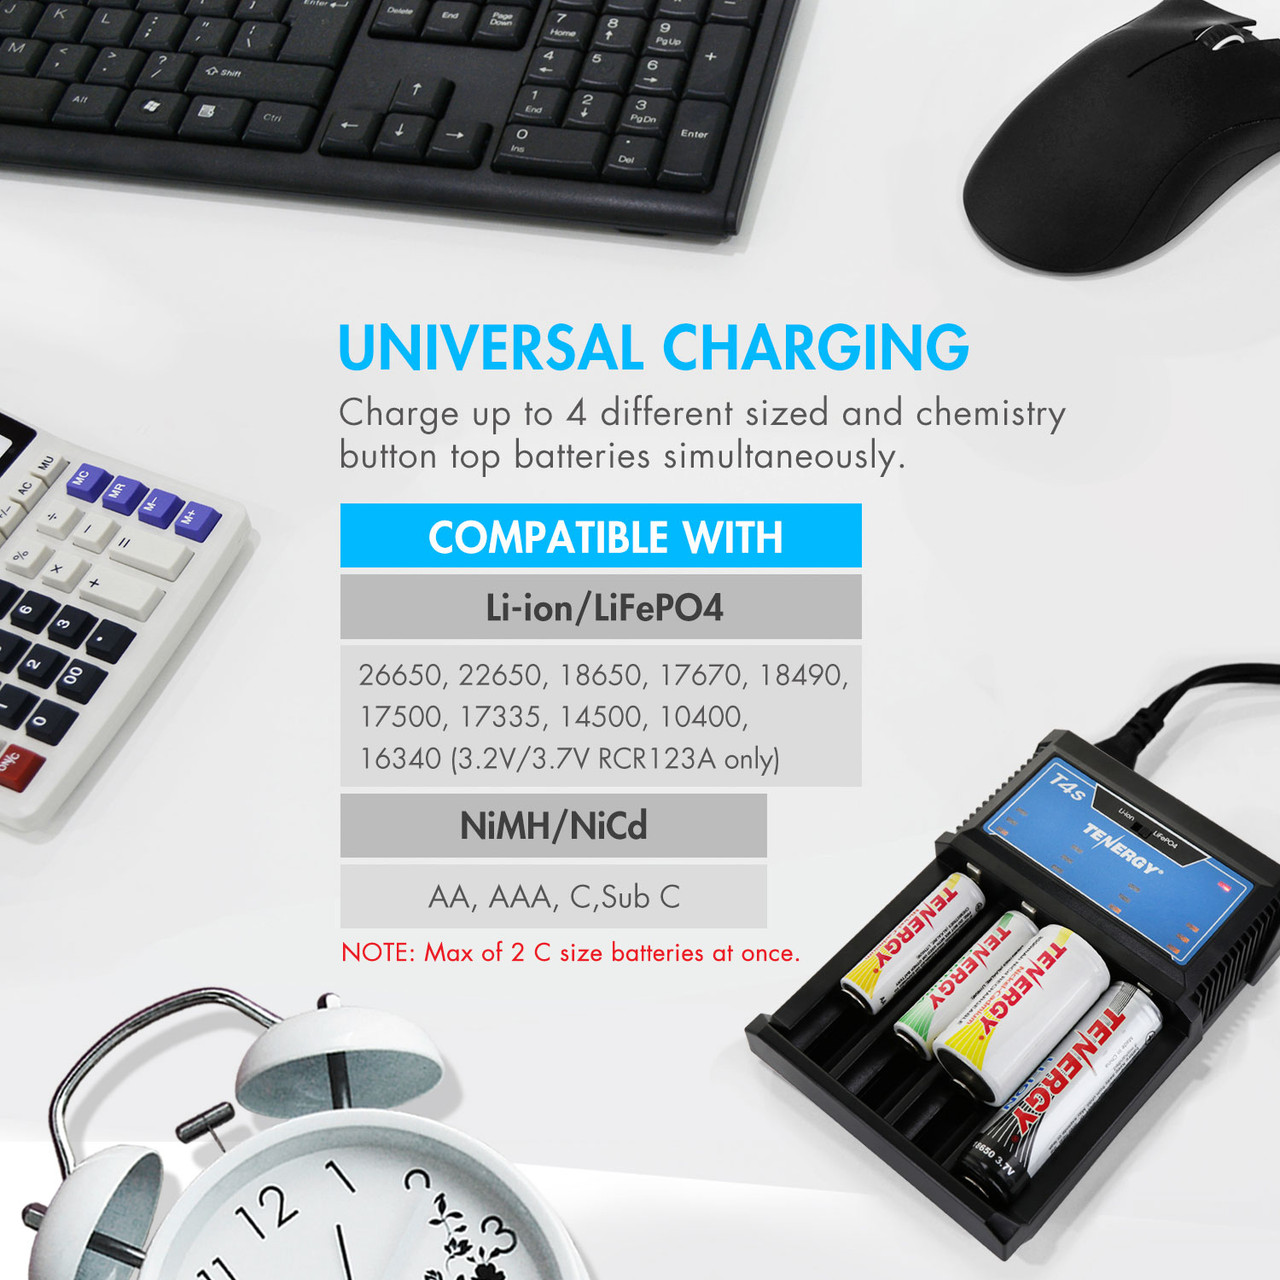 Combo: Tenergy T4s Universal LED Battery Charger + 2 Pack NiMH Rechargeable C Batteries